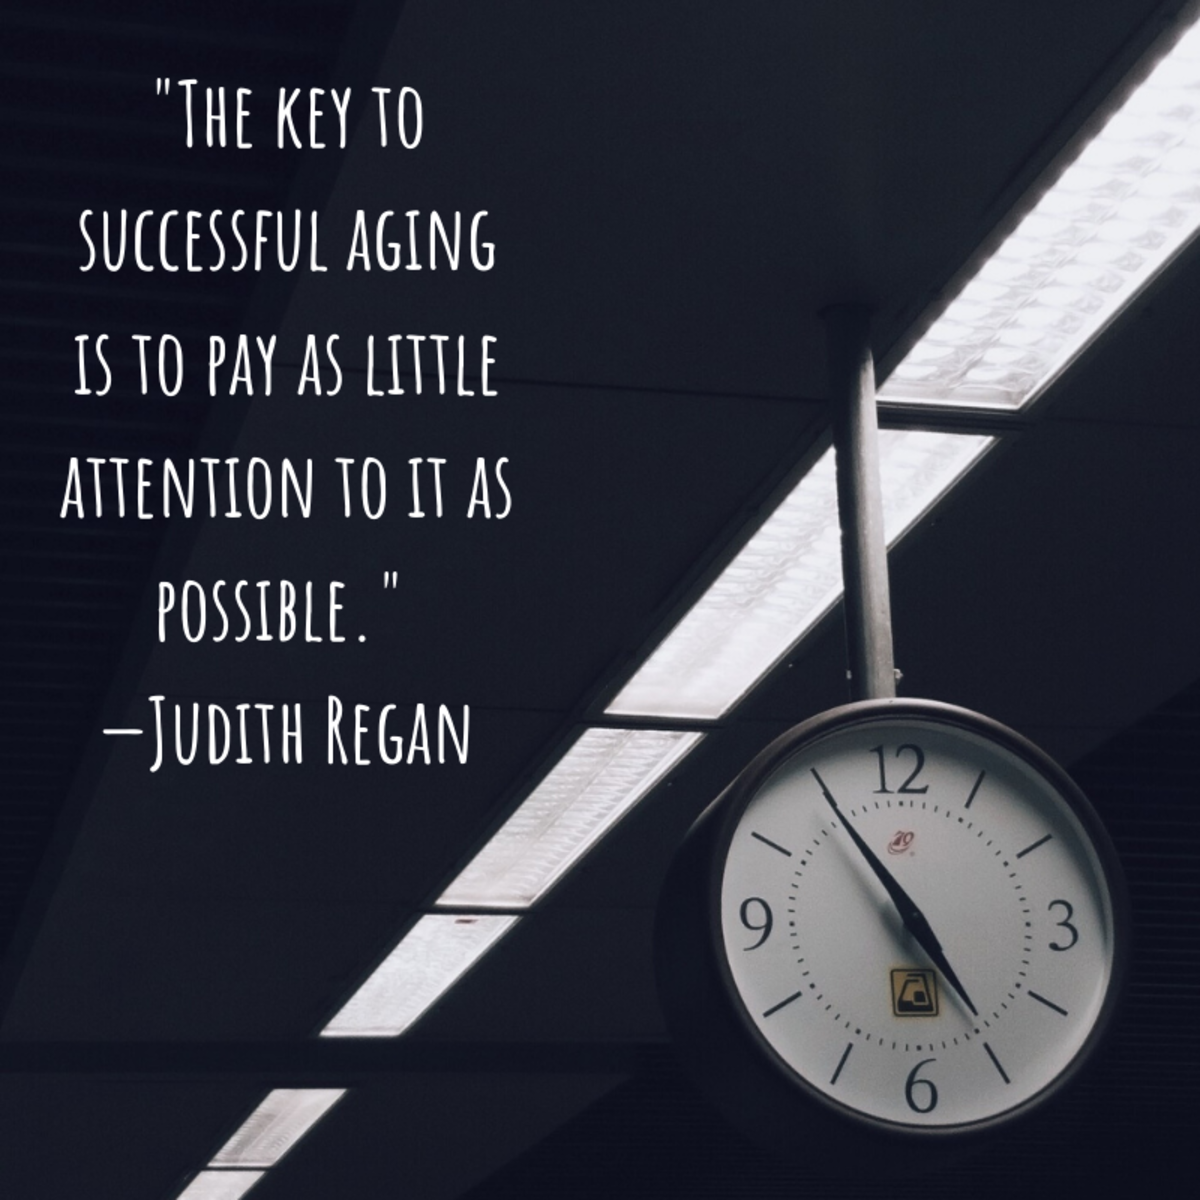 """The key to successful aging is to pay as little attention to it as possible."" —Judith Regan"